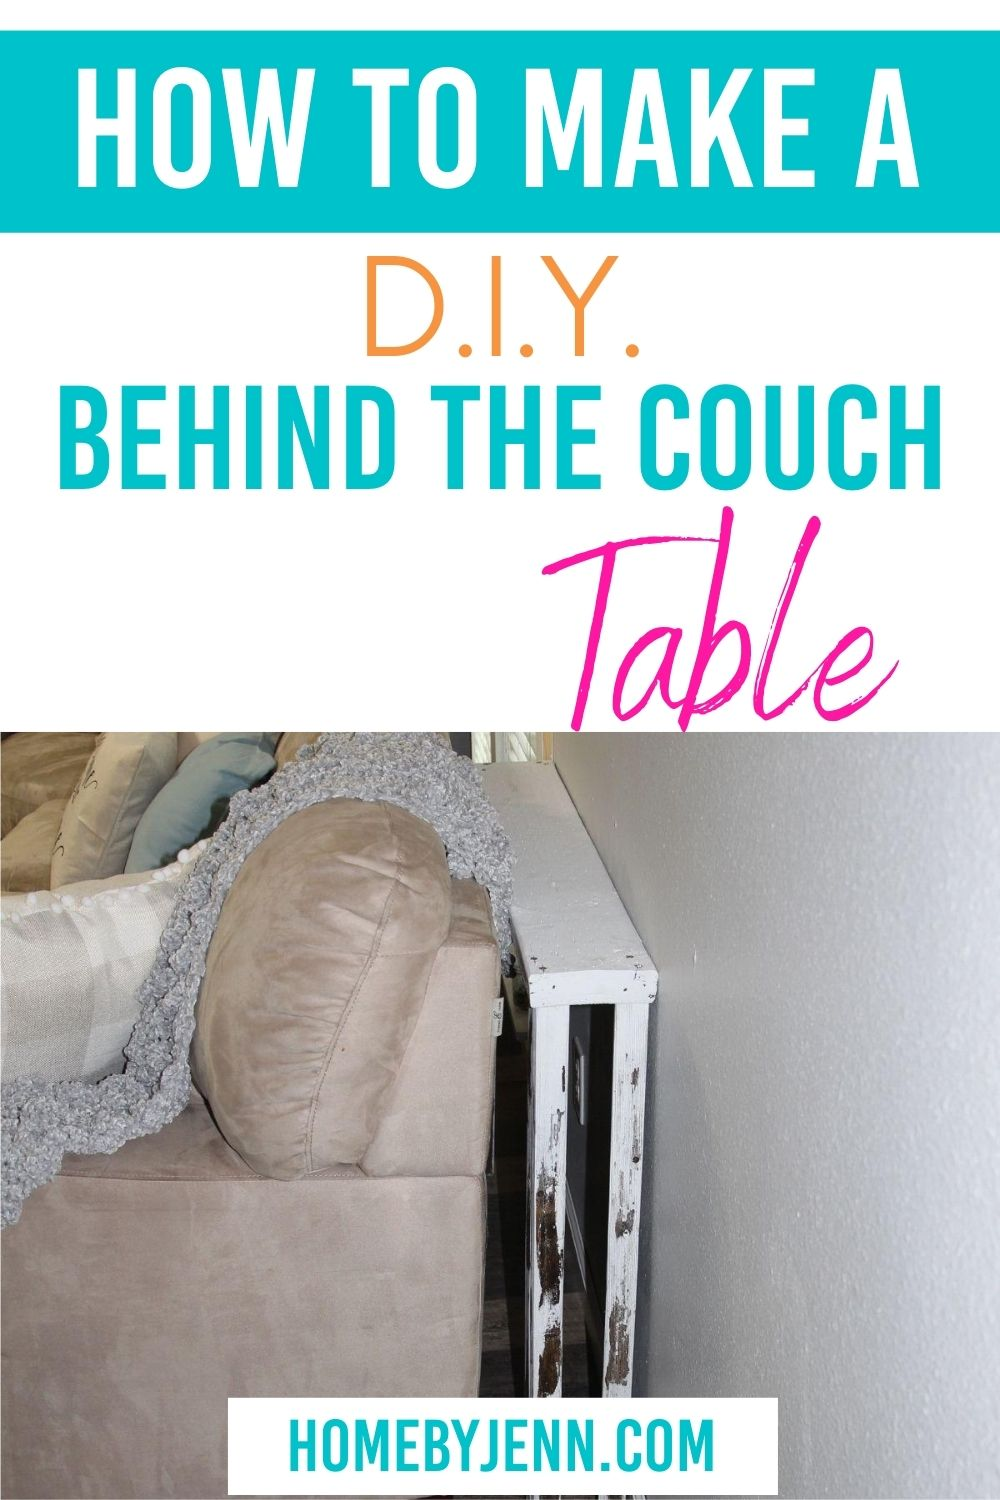 behind the couch table via @homebyjenn